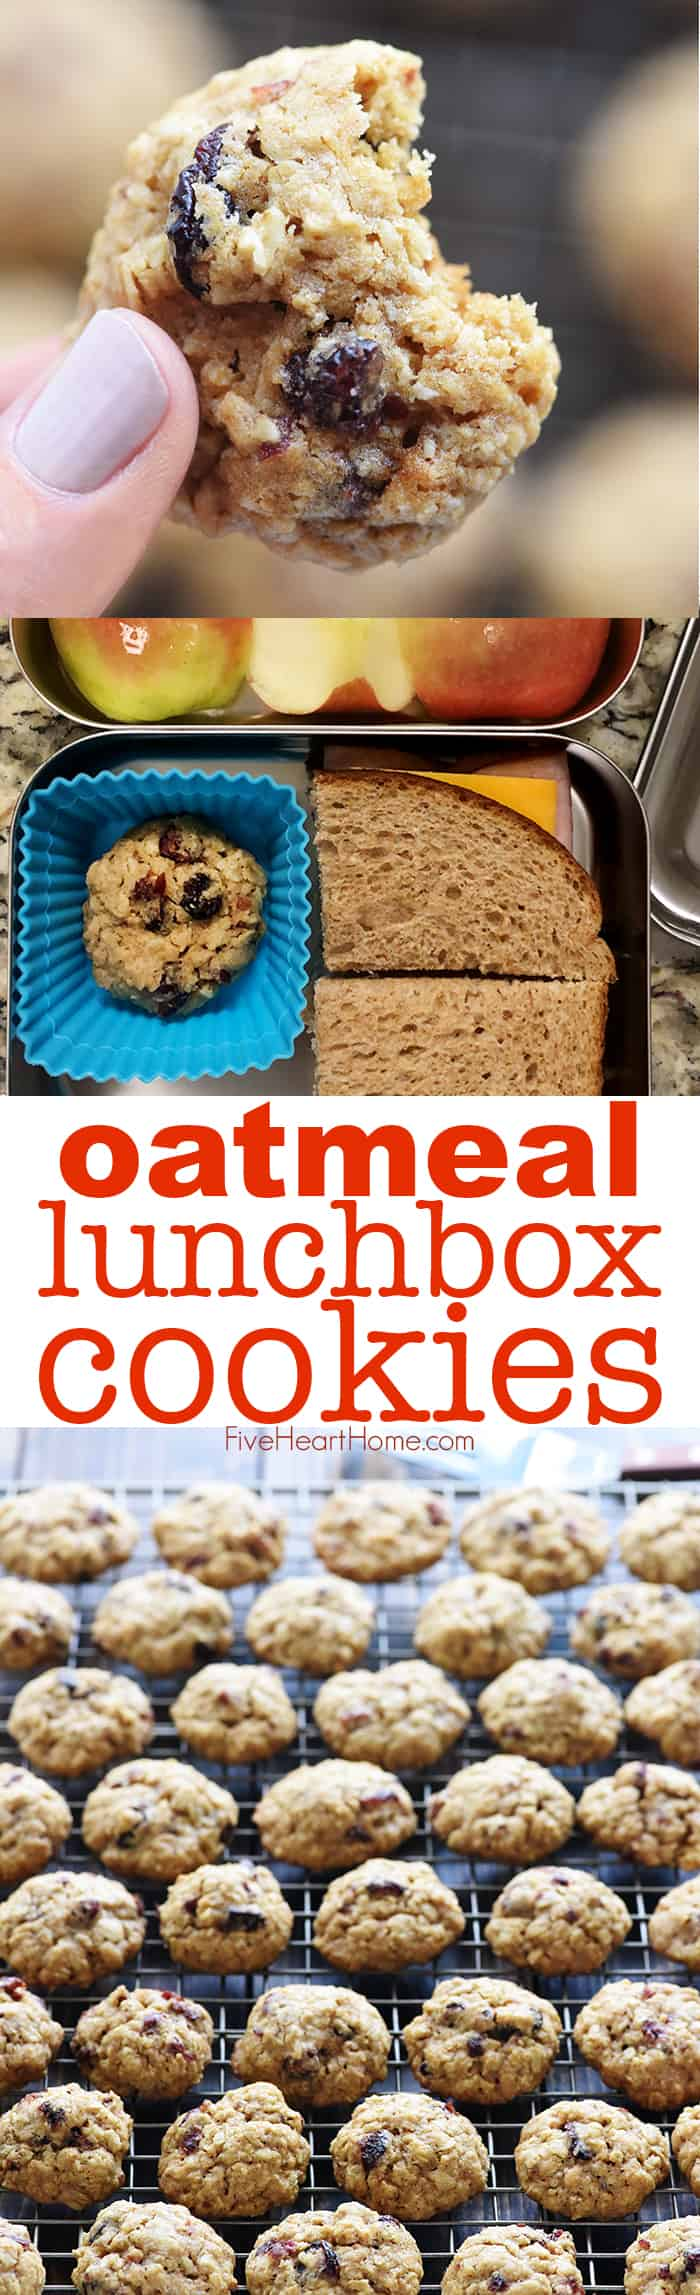 Oatmeal Lunchbox Cookies